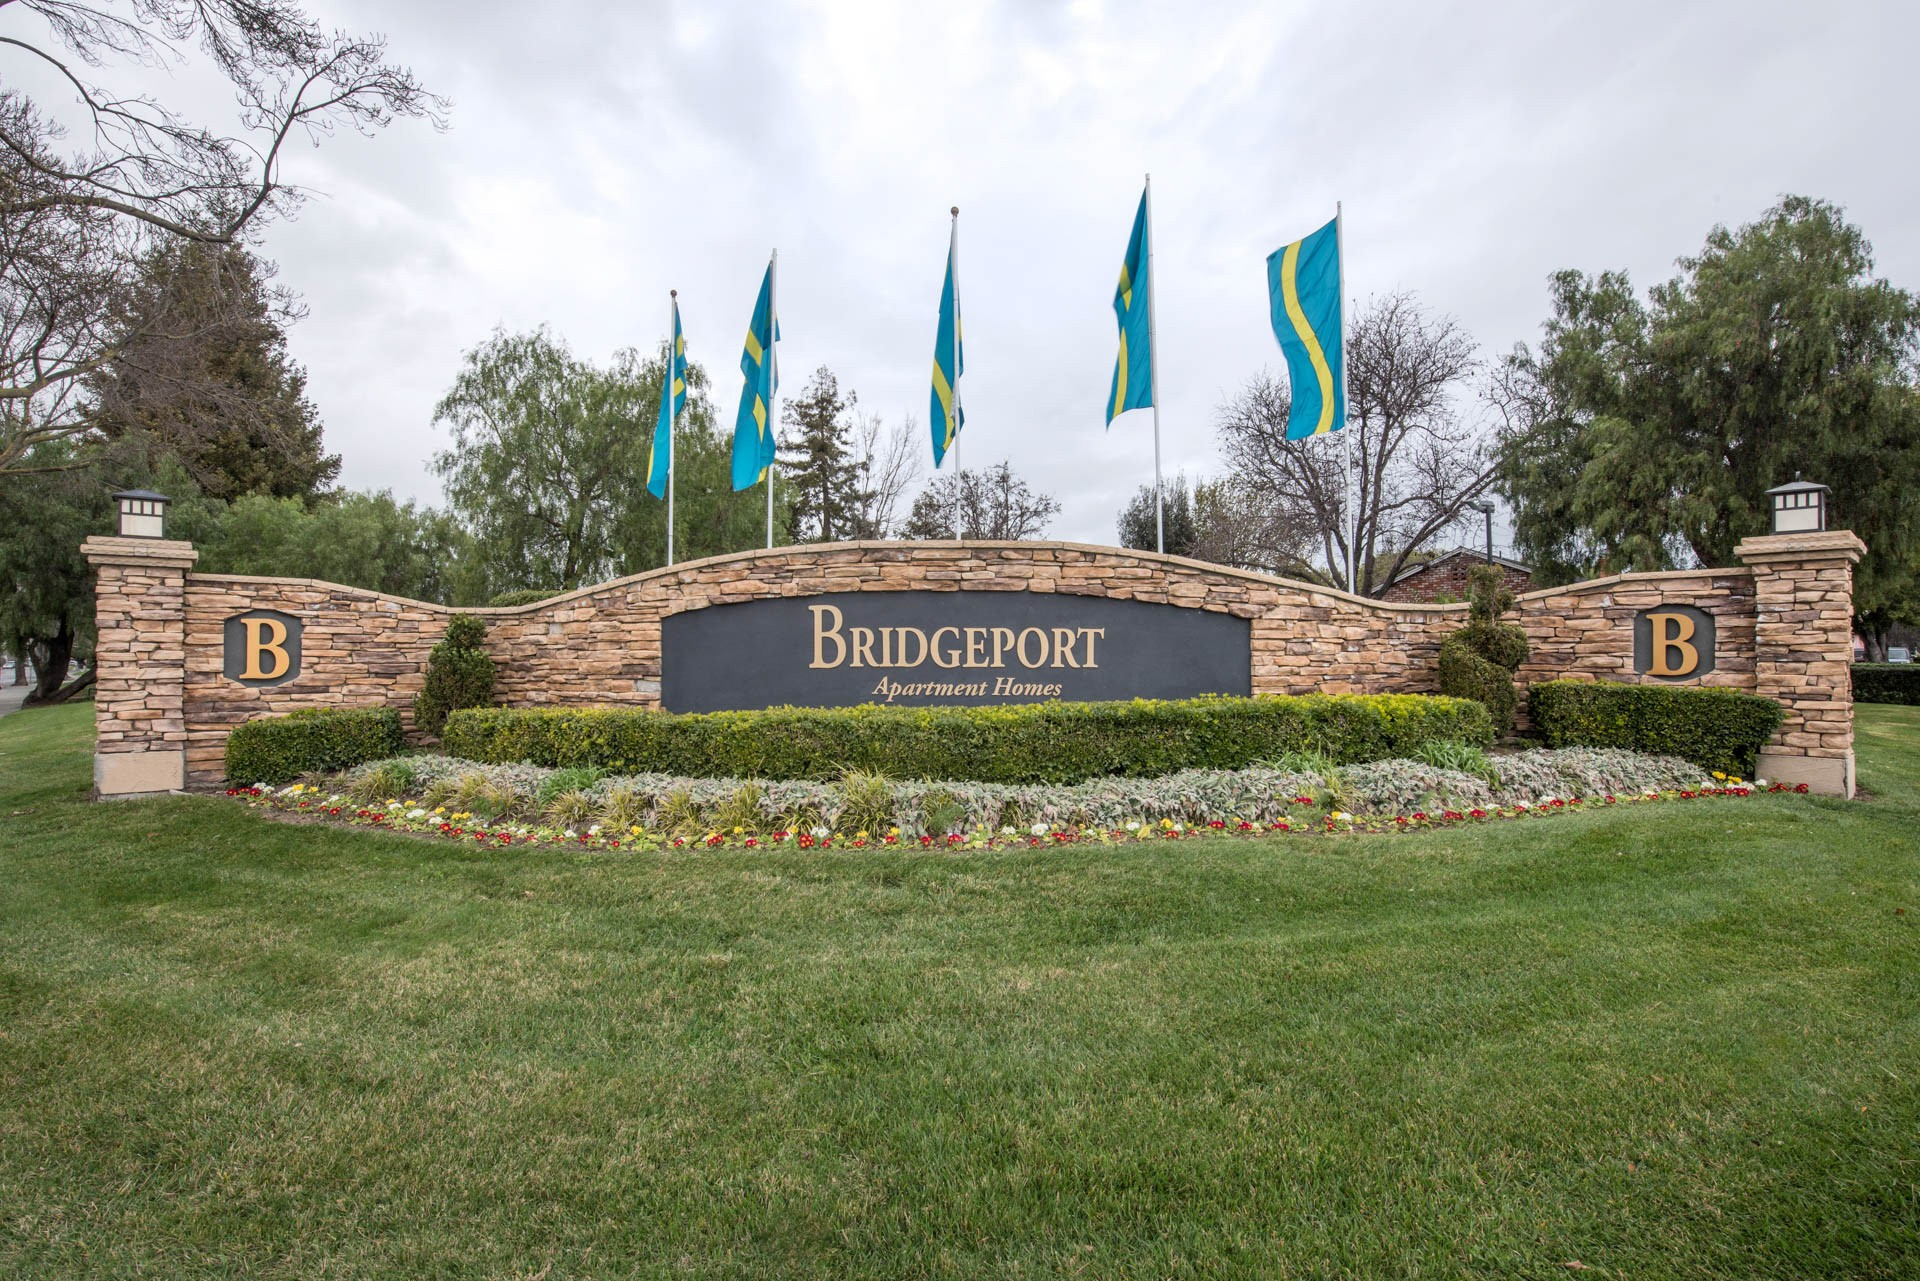 Bridgeport Apartment Homes